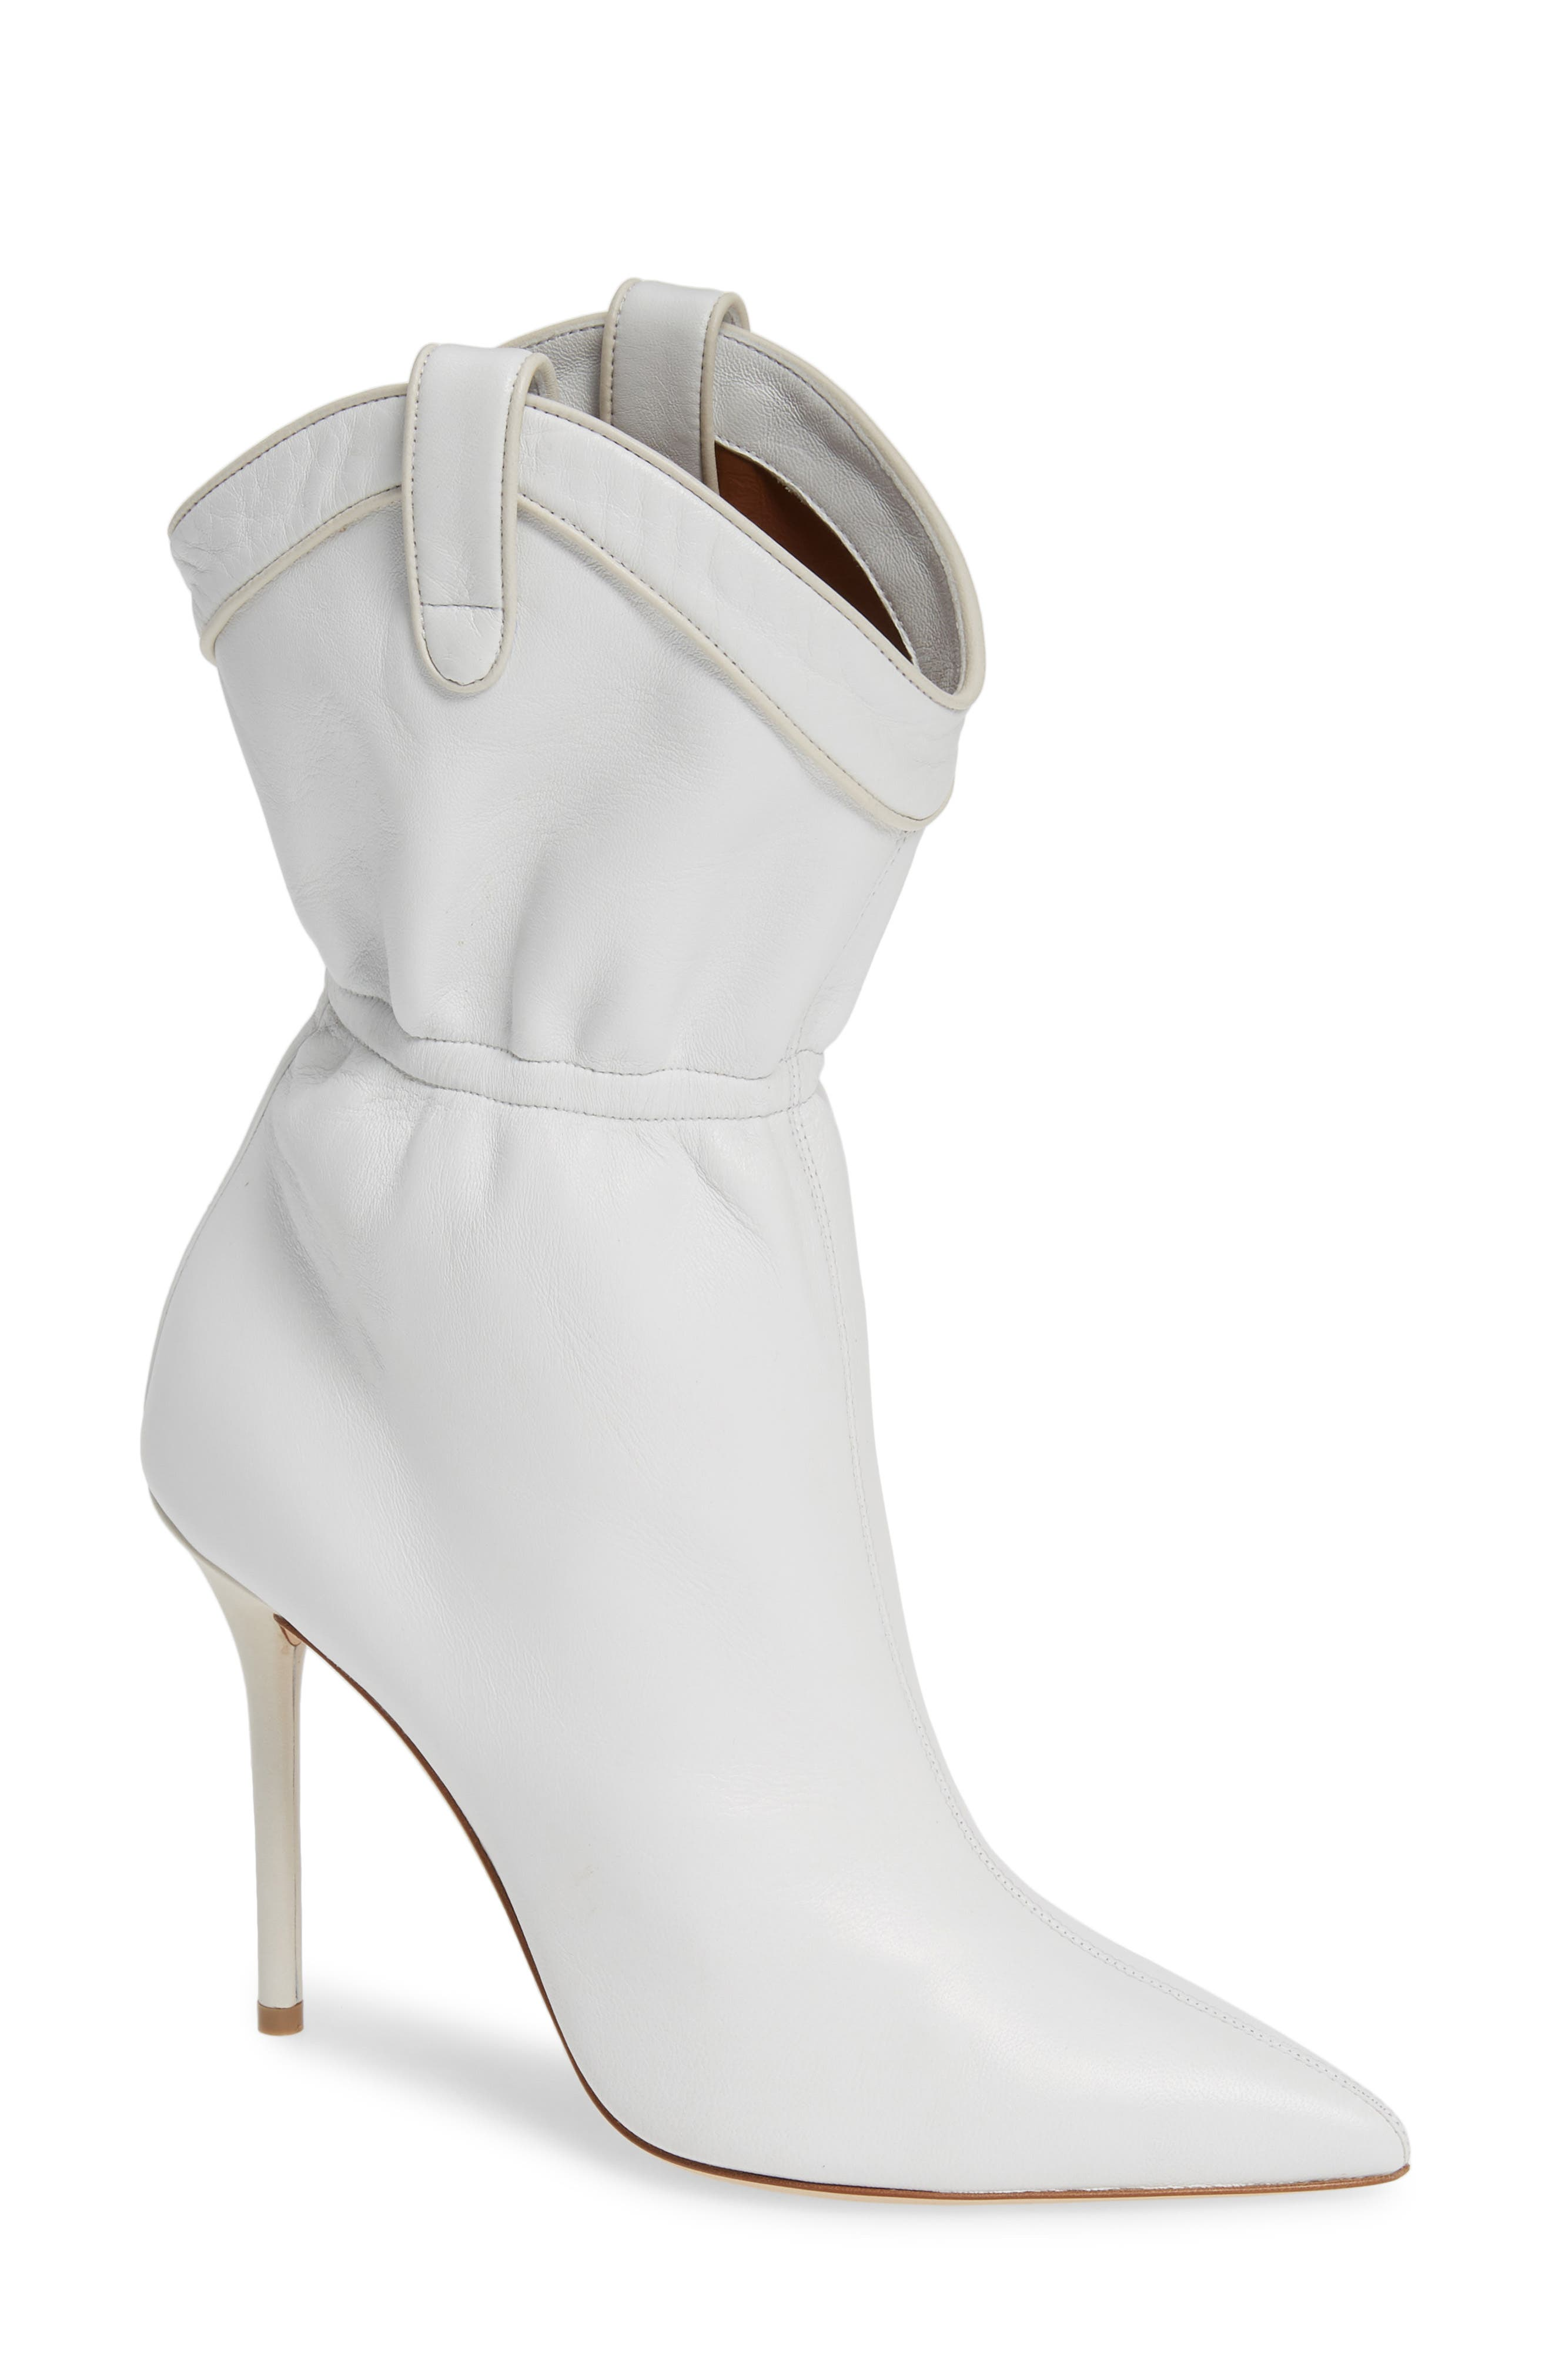 Malone Souliers Daisy Cinched Bootie